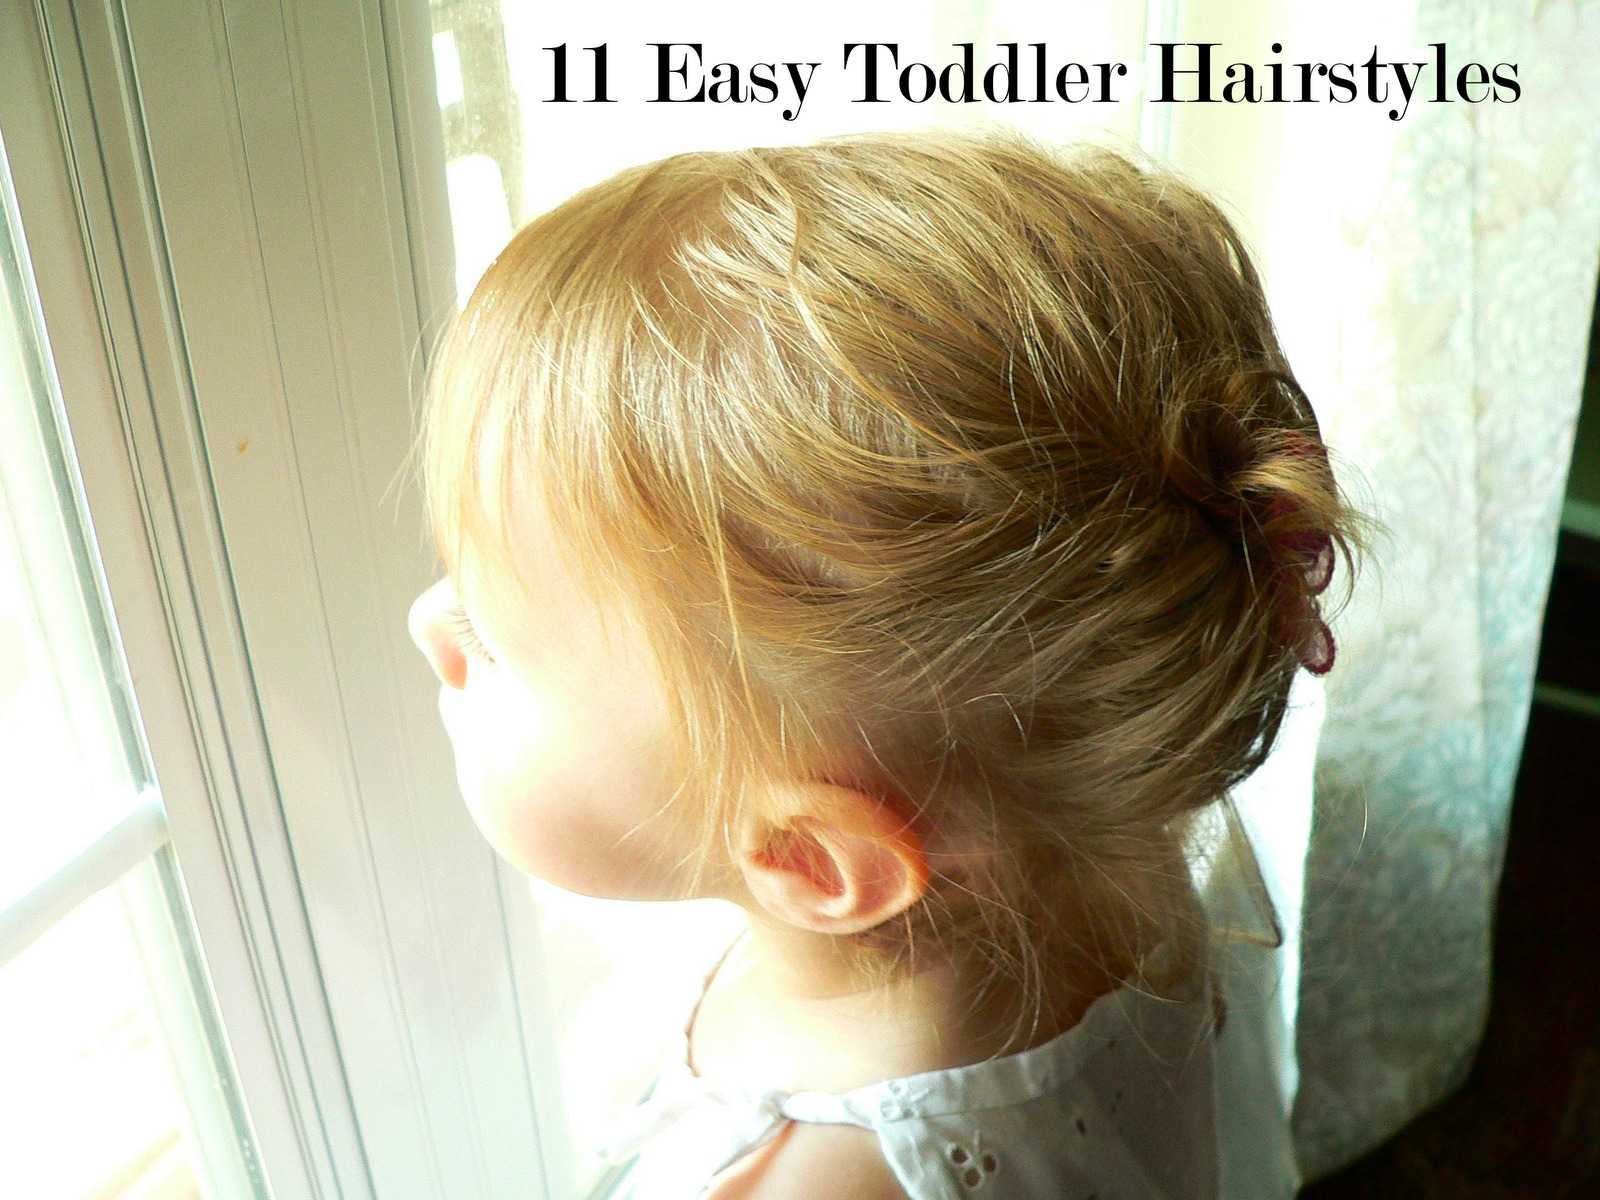 hairstyles for very long hair : Haircuts For Kids Girls Short Hair 11 easy toddler hairstyles